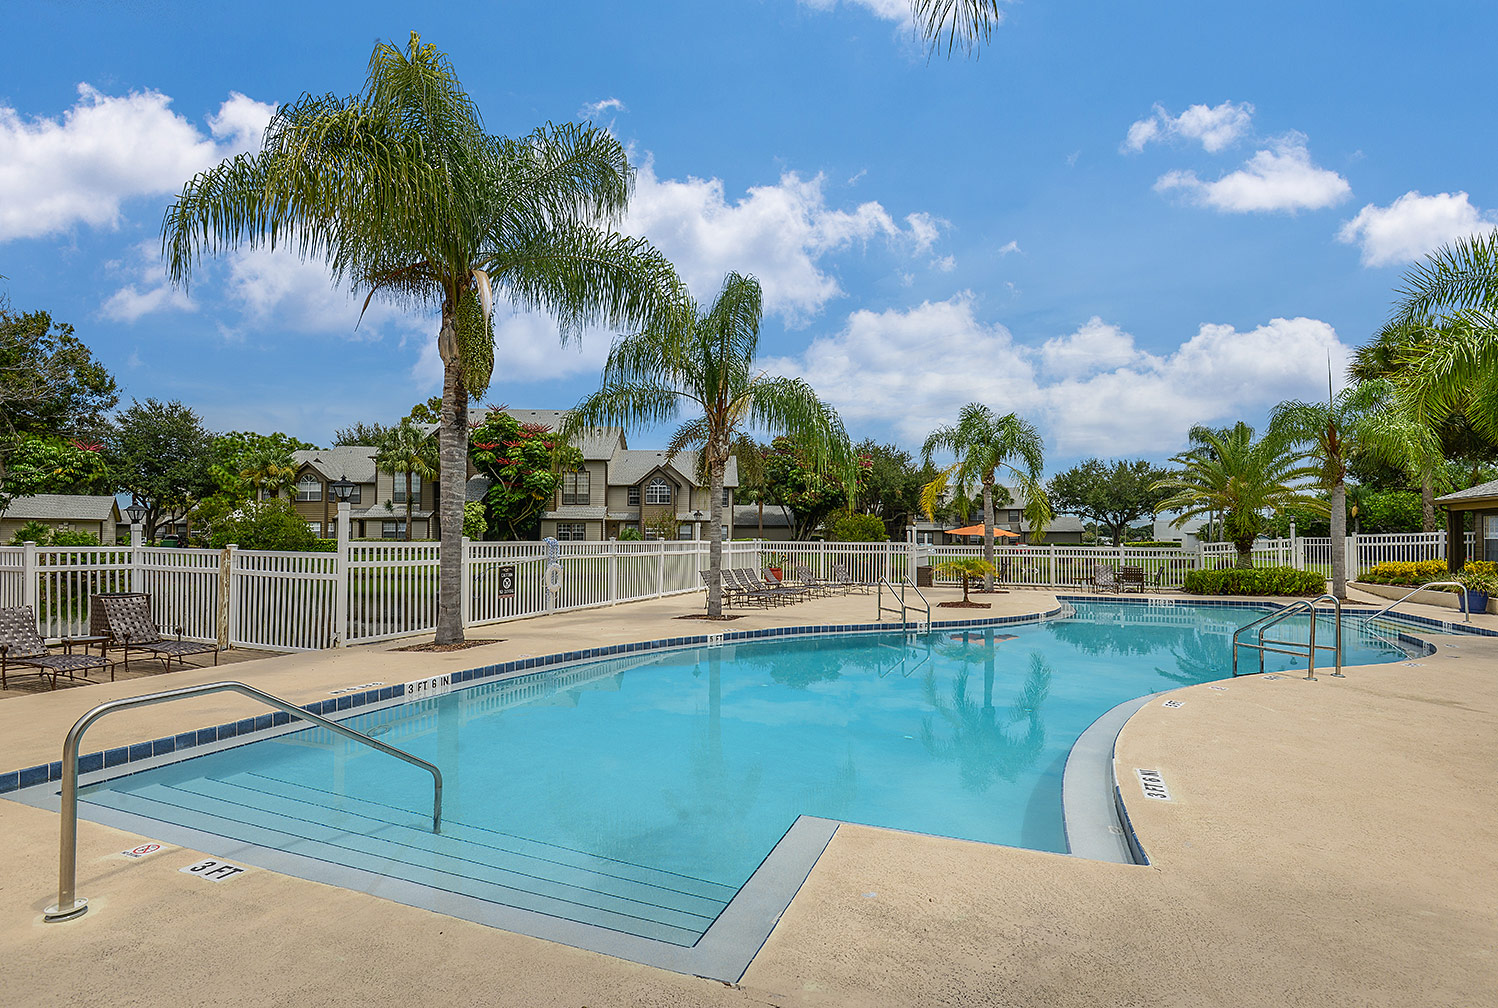 Caribbean Isle apartments with pool